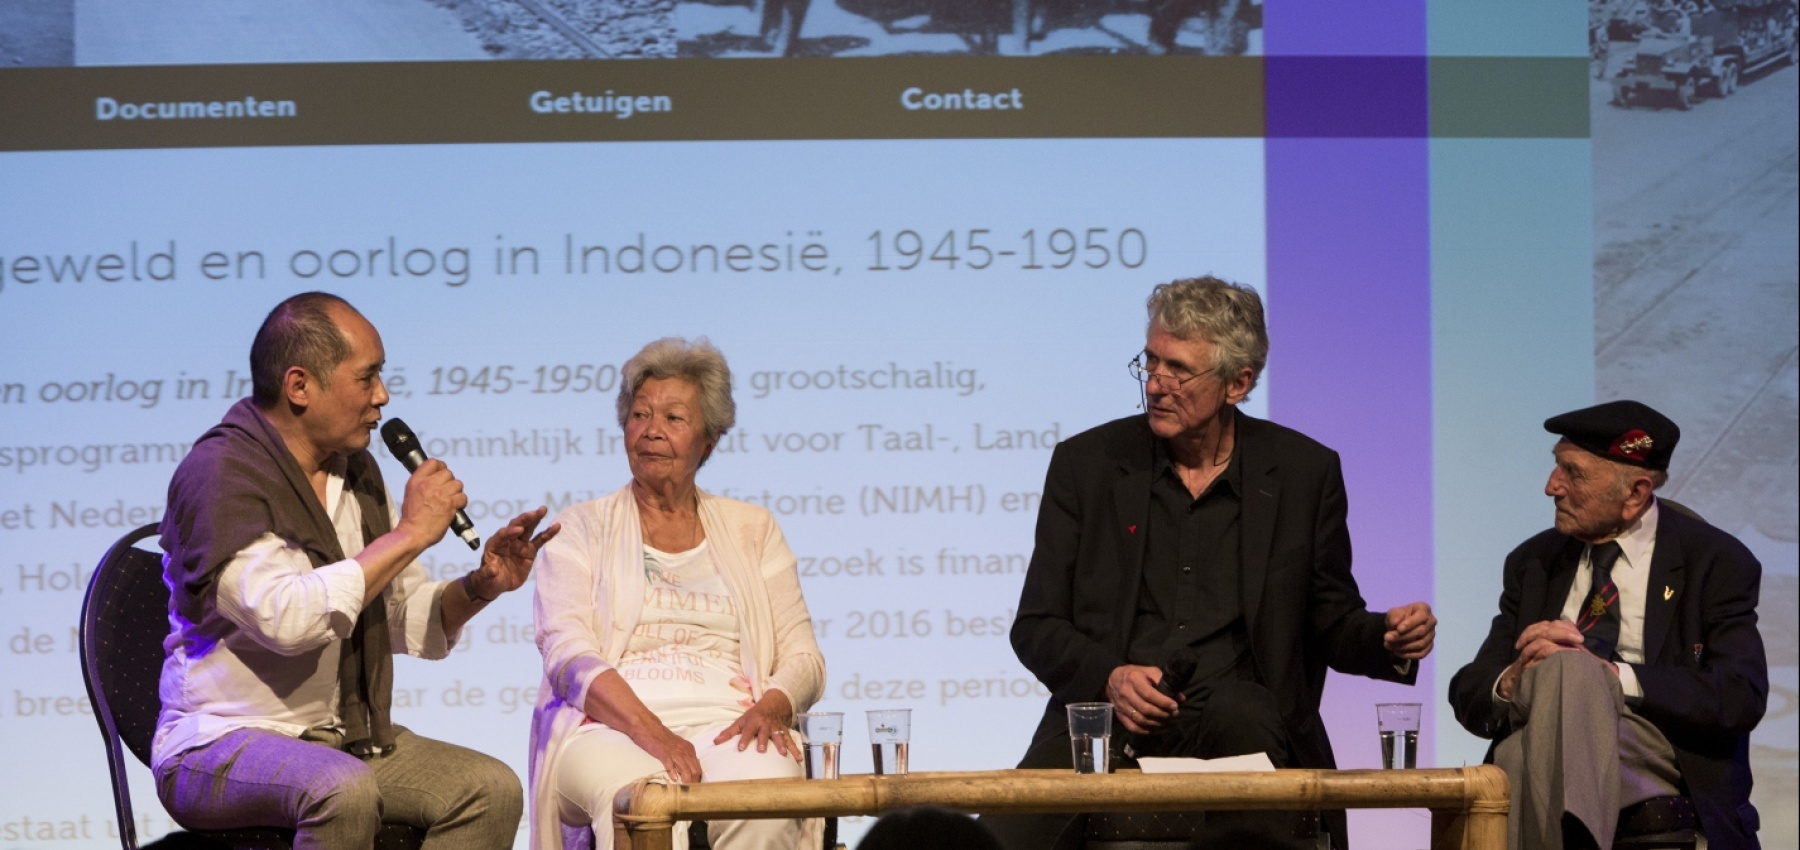 Peter Bouman, Rita Young, Fridus Steijlen and Ad Jansen during the kick-off of witnesses and contemporaries at the Tong Tong Fair. Beeld: Tong Tong Fair/Henriette Guest